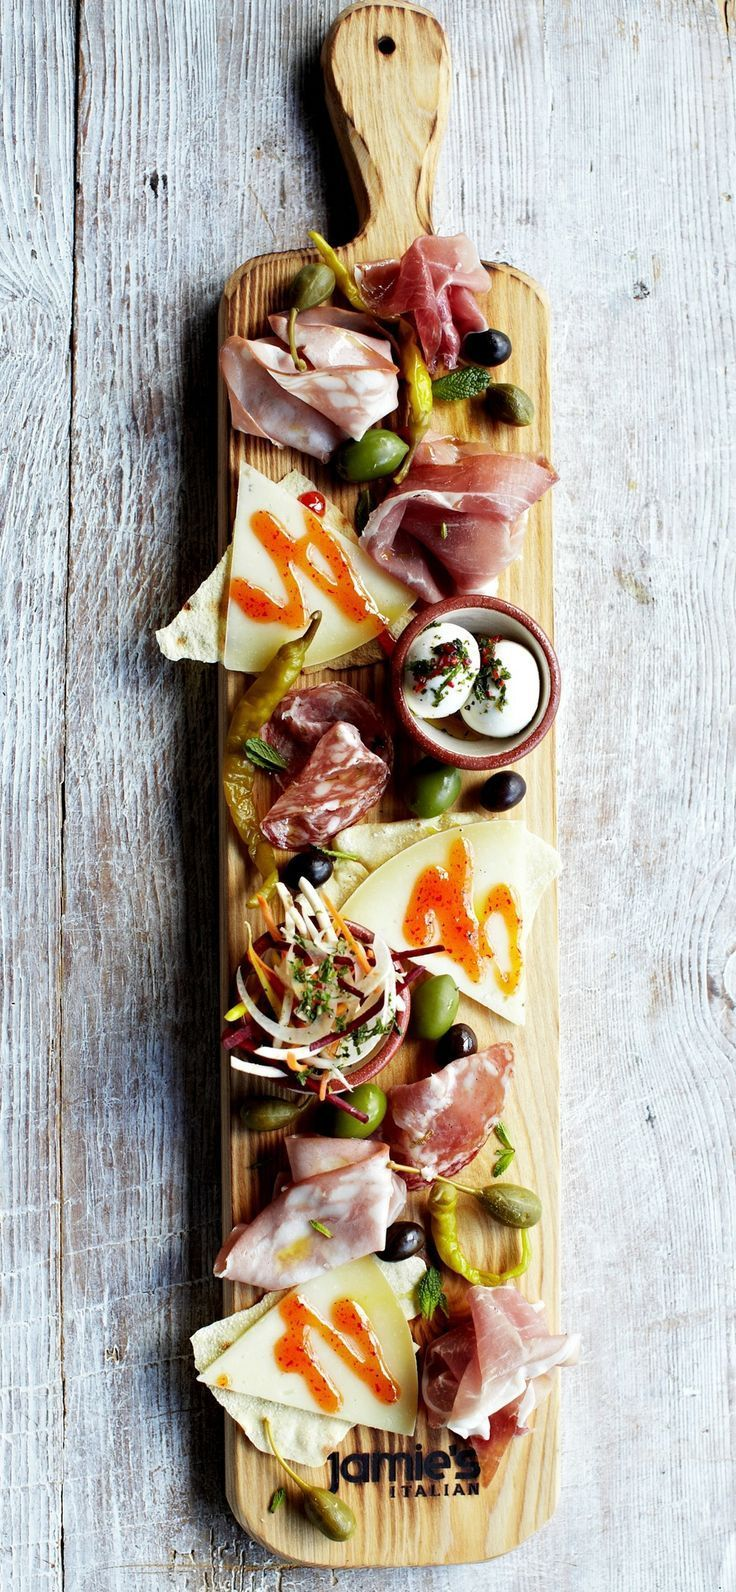 The famous planks at Jamie's Italian. Served with your favorite cured meats, Italian cheeses, and pickled vegetables. www.bingohall.com